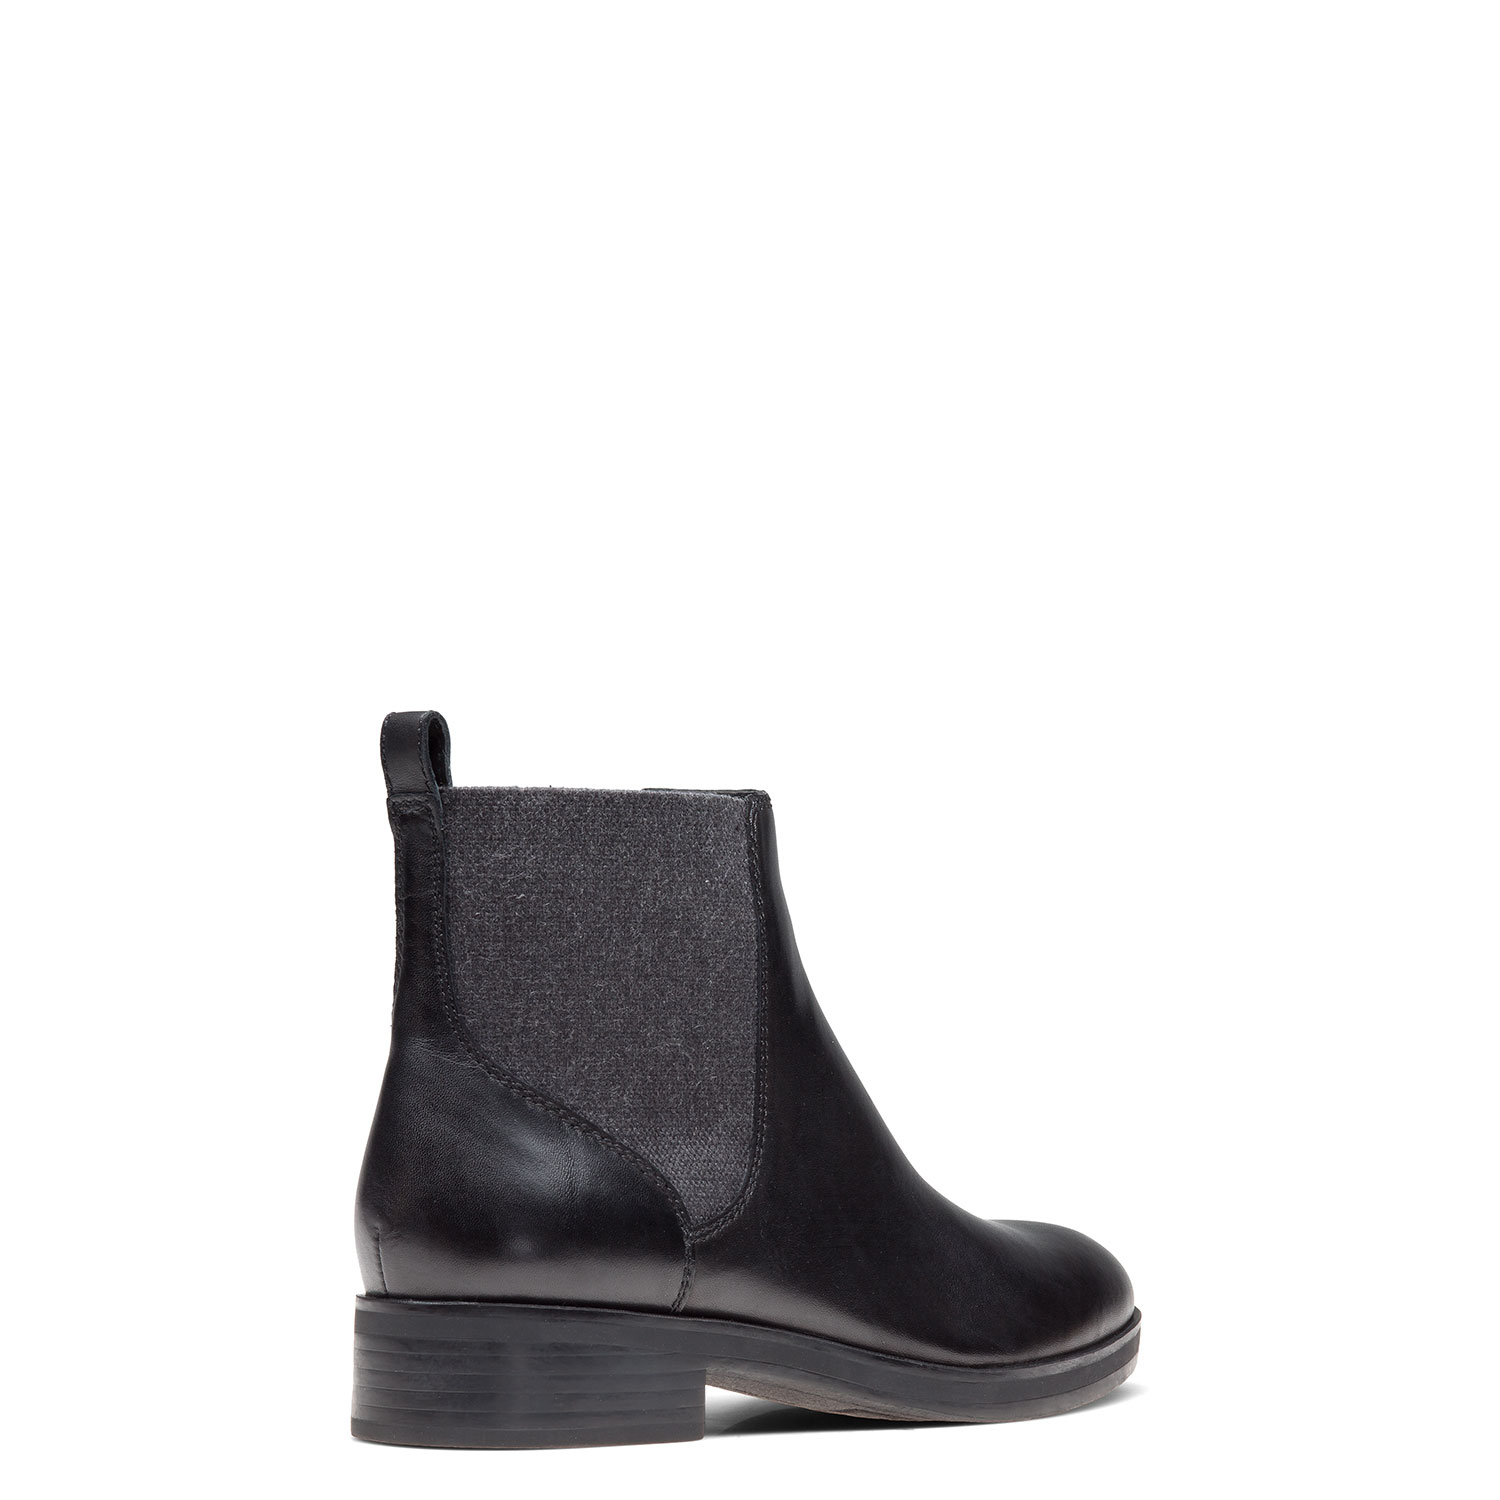 Women's cold weather ankle boots CARLO PAZOLINI MT-TID6-20